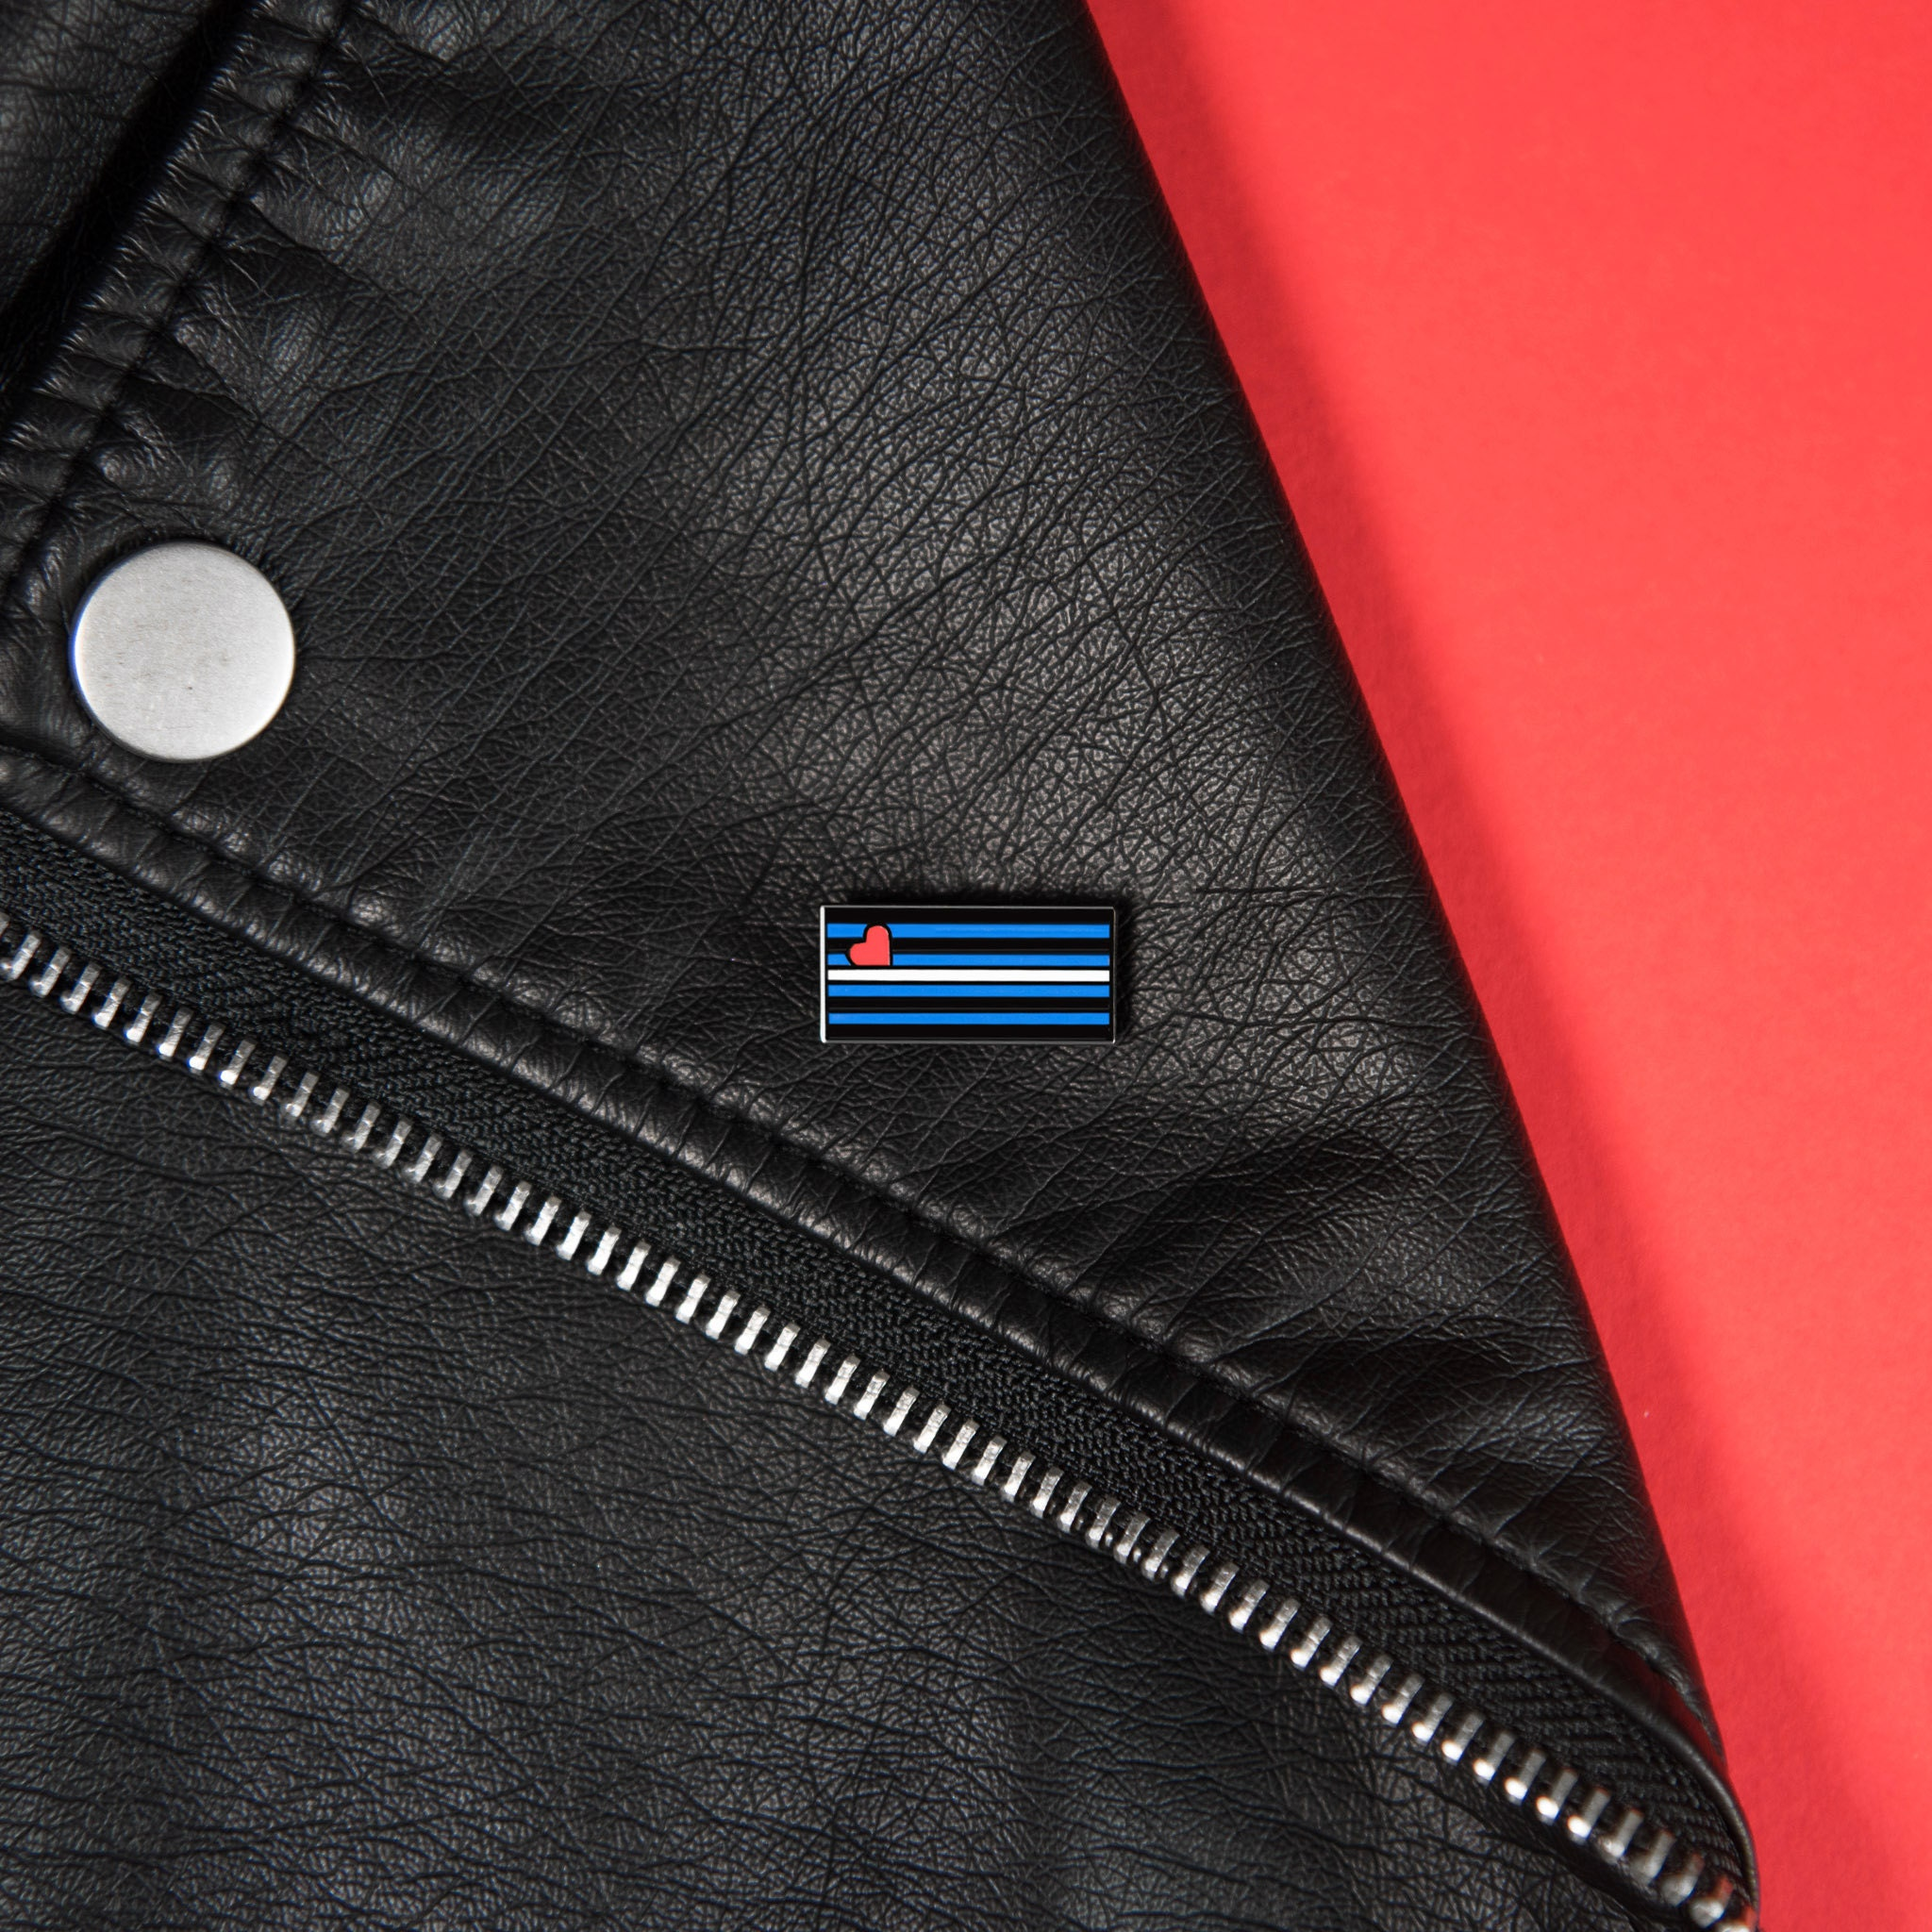 LGBT Leather Pride Flag Sex Kink Pup Accessory Badge Pin